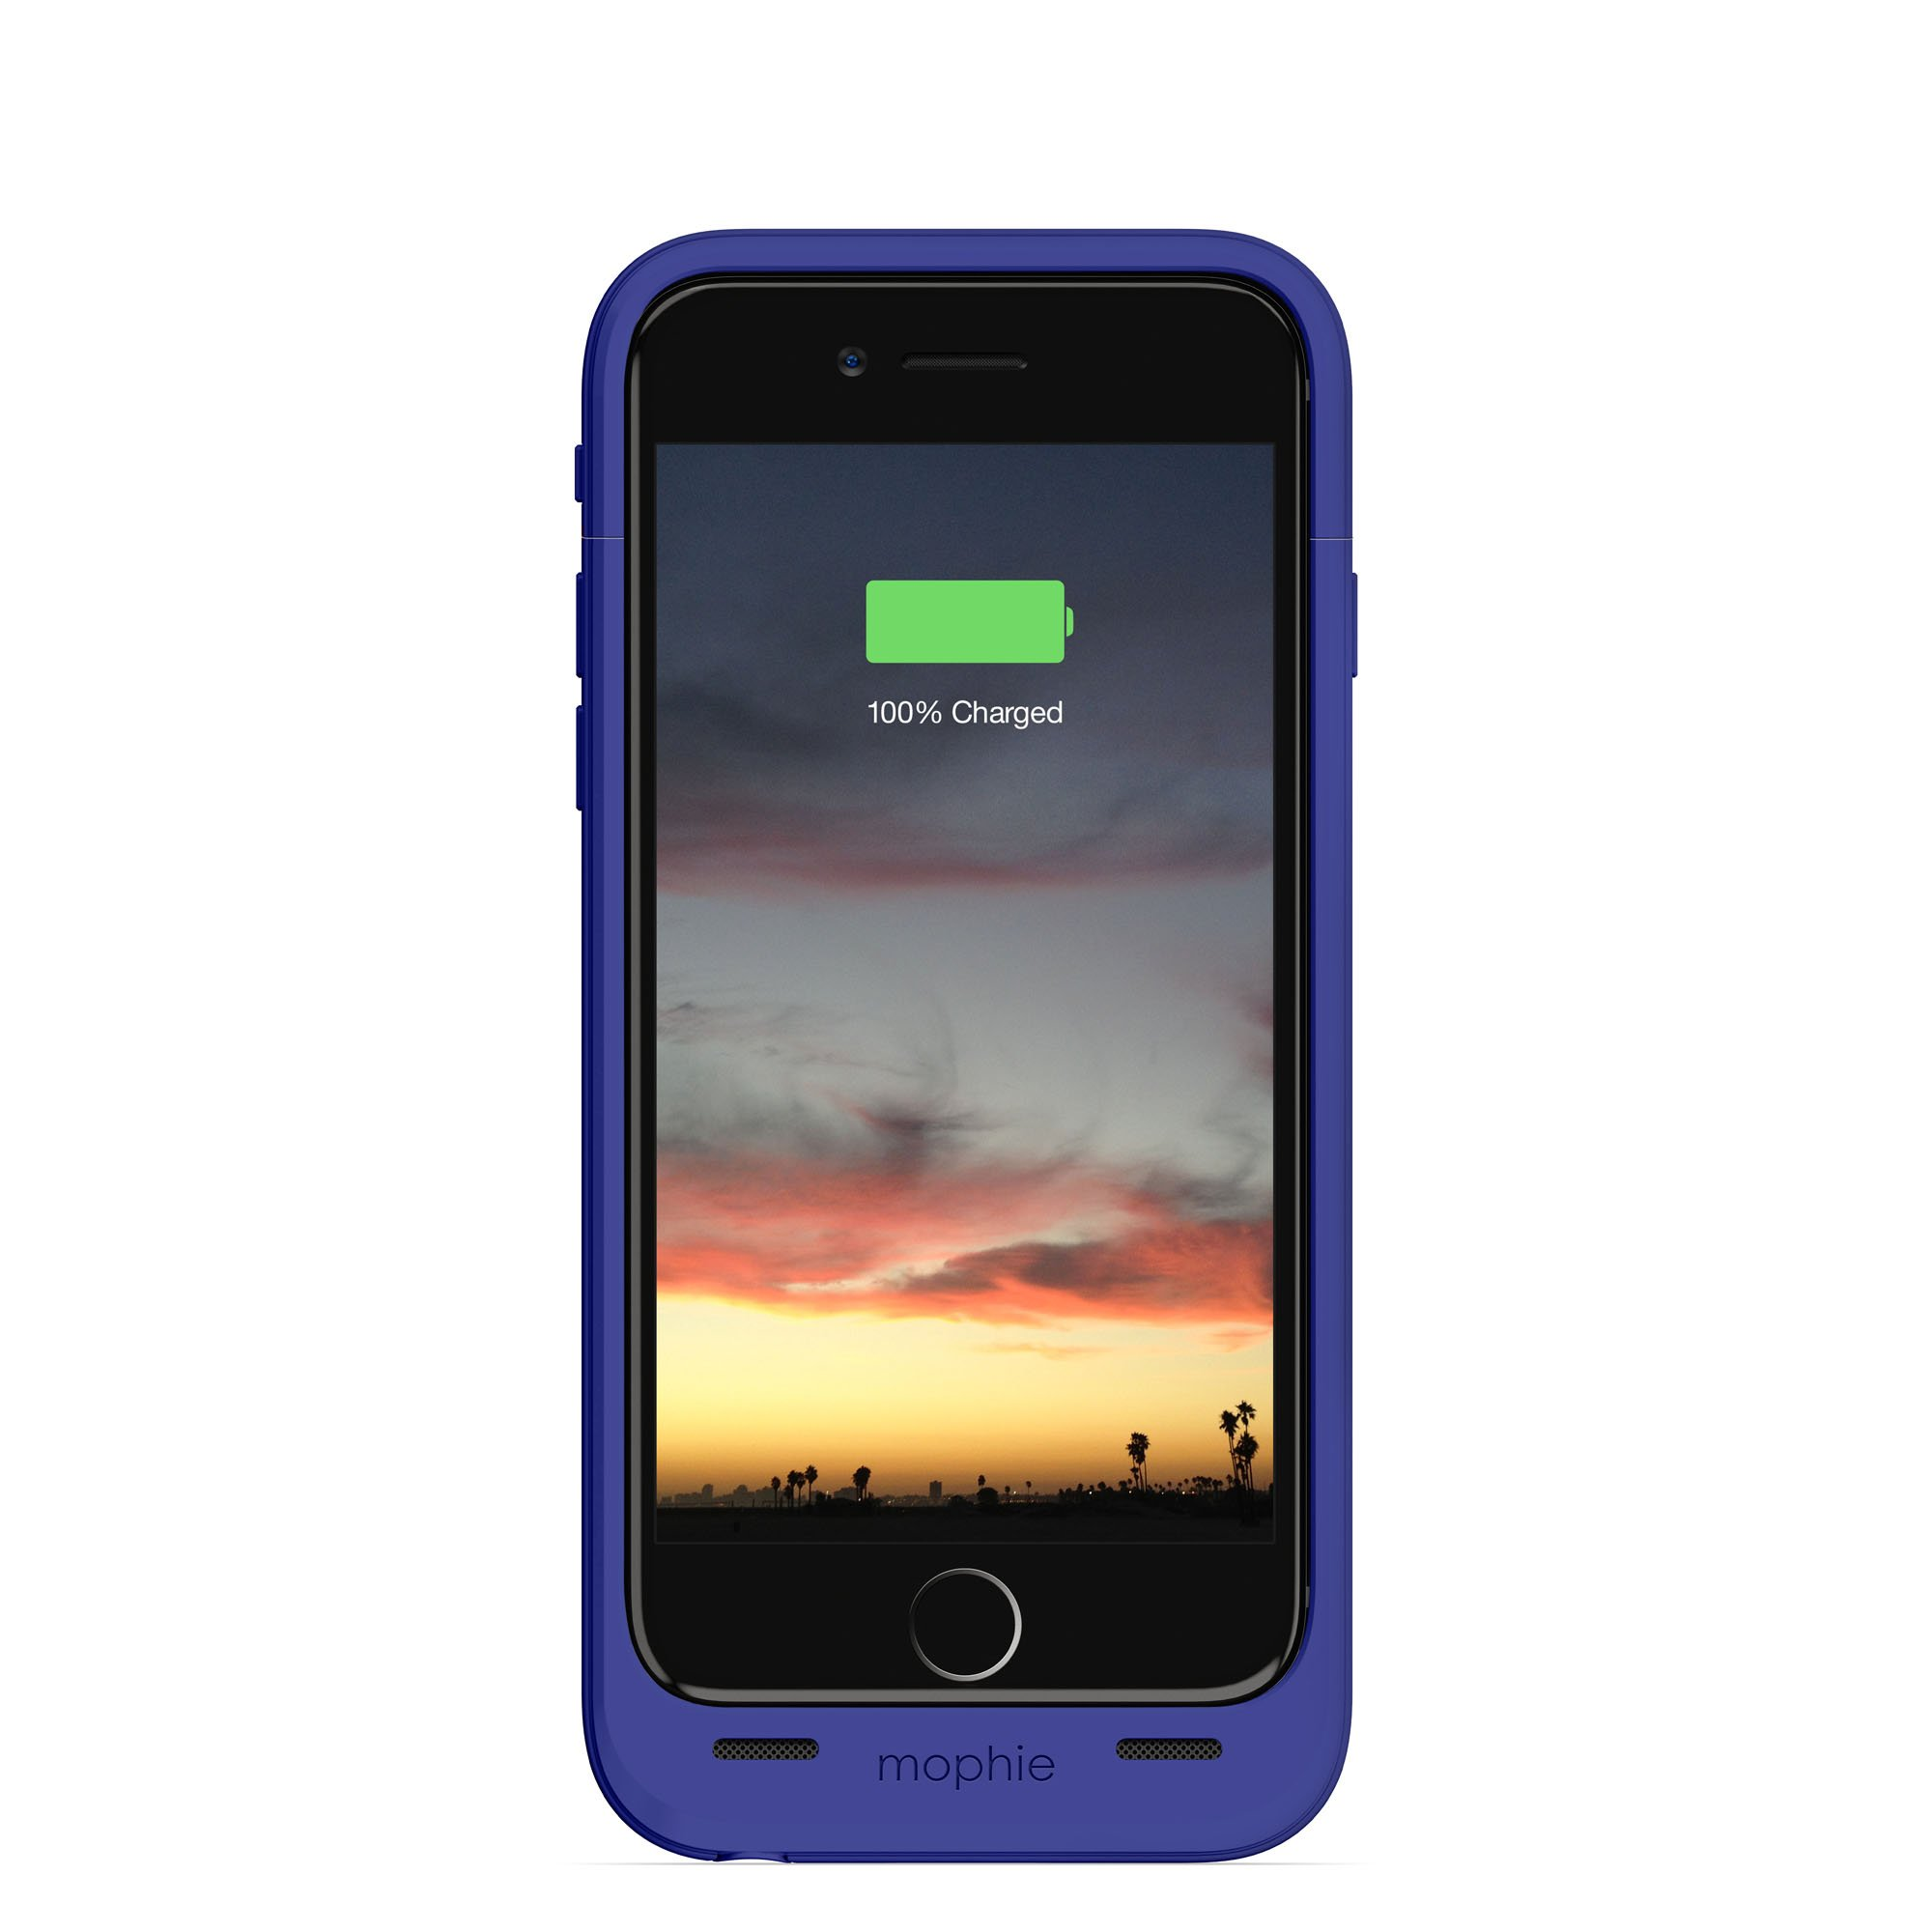 mophie juice pack air - Slim Protective Mobile Battery Pack Case for iPhone 6/6s - Purple